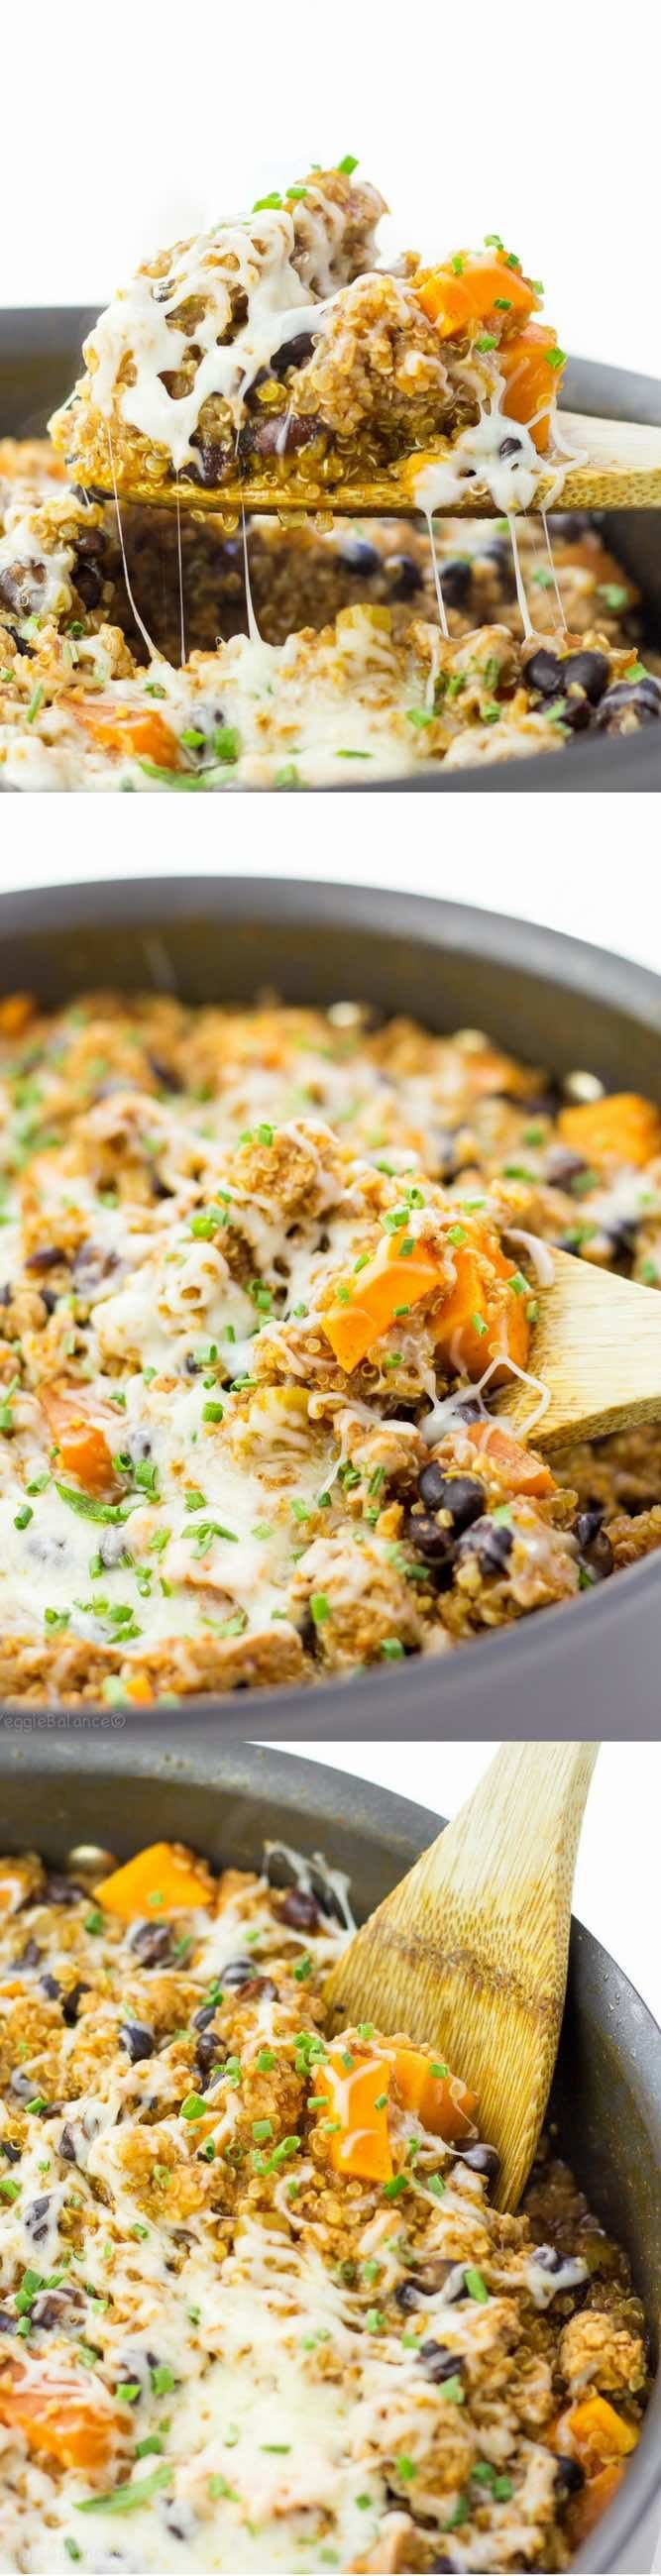 One Pan Quinoa Enchilada for those quick weeknight dinner meals to the rescue. Toss it all in one pan and dinner is served in under 30 minutes. Mexican flavors, a meal made in under 30 minutes AND only one dish... Heaven. (Gluten Free, Dairy Free)